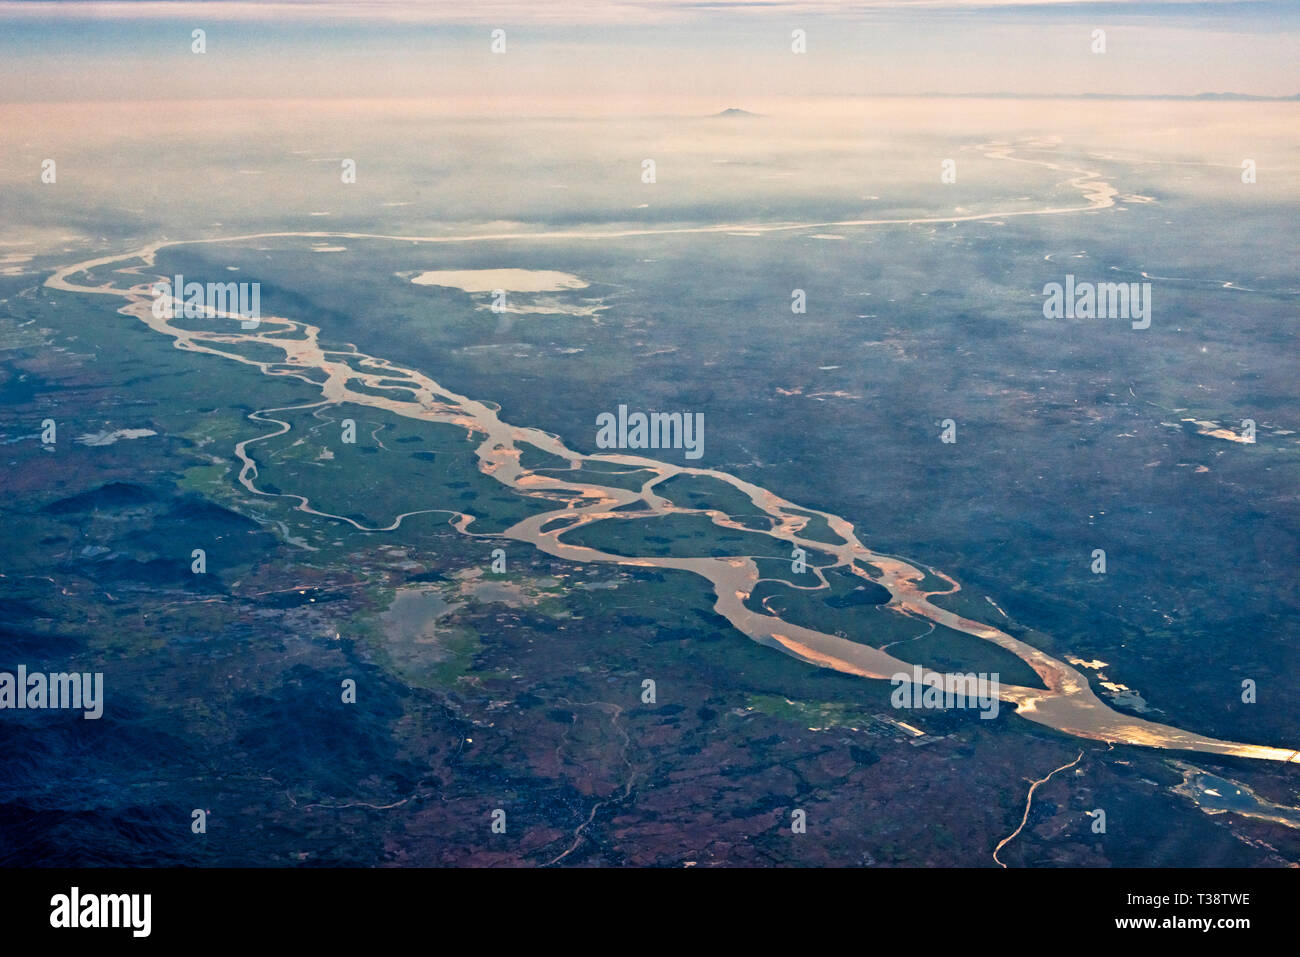 Ganges Aerial View India High Resolution Stock Photography And Images Alamy